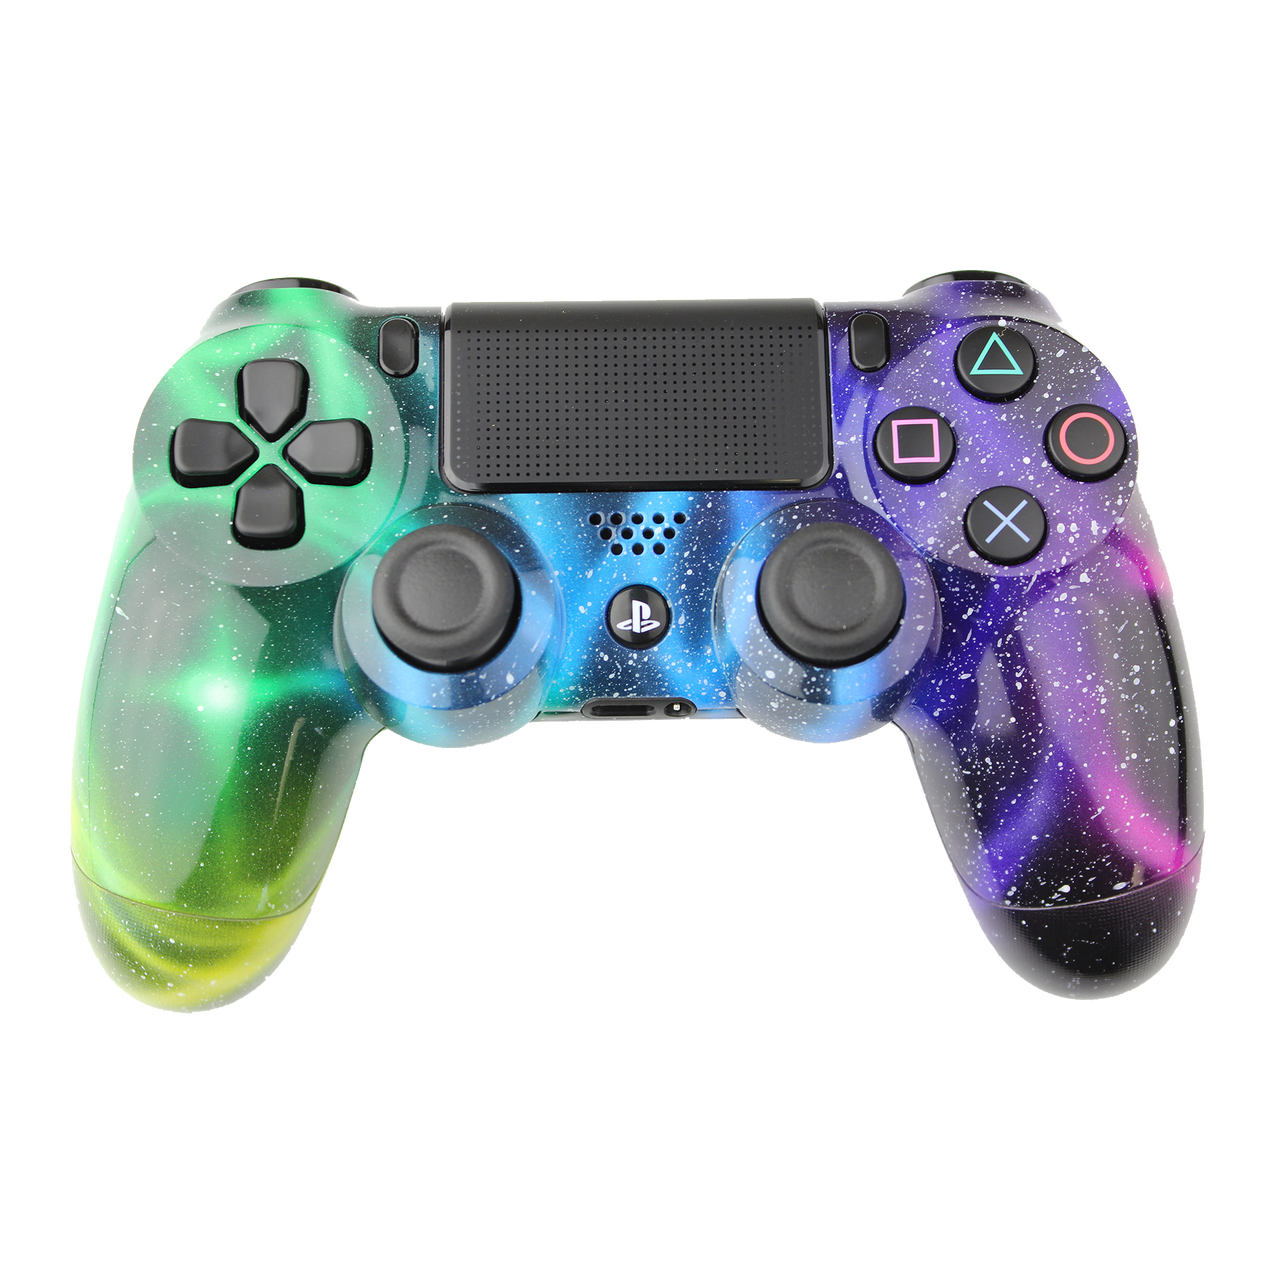 Game Controllers For Ps4 : Morbidstix nebula galaxy playstation controller